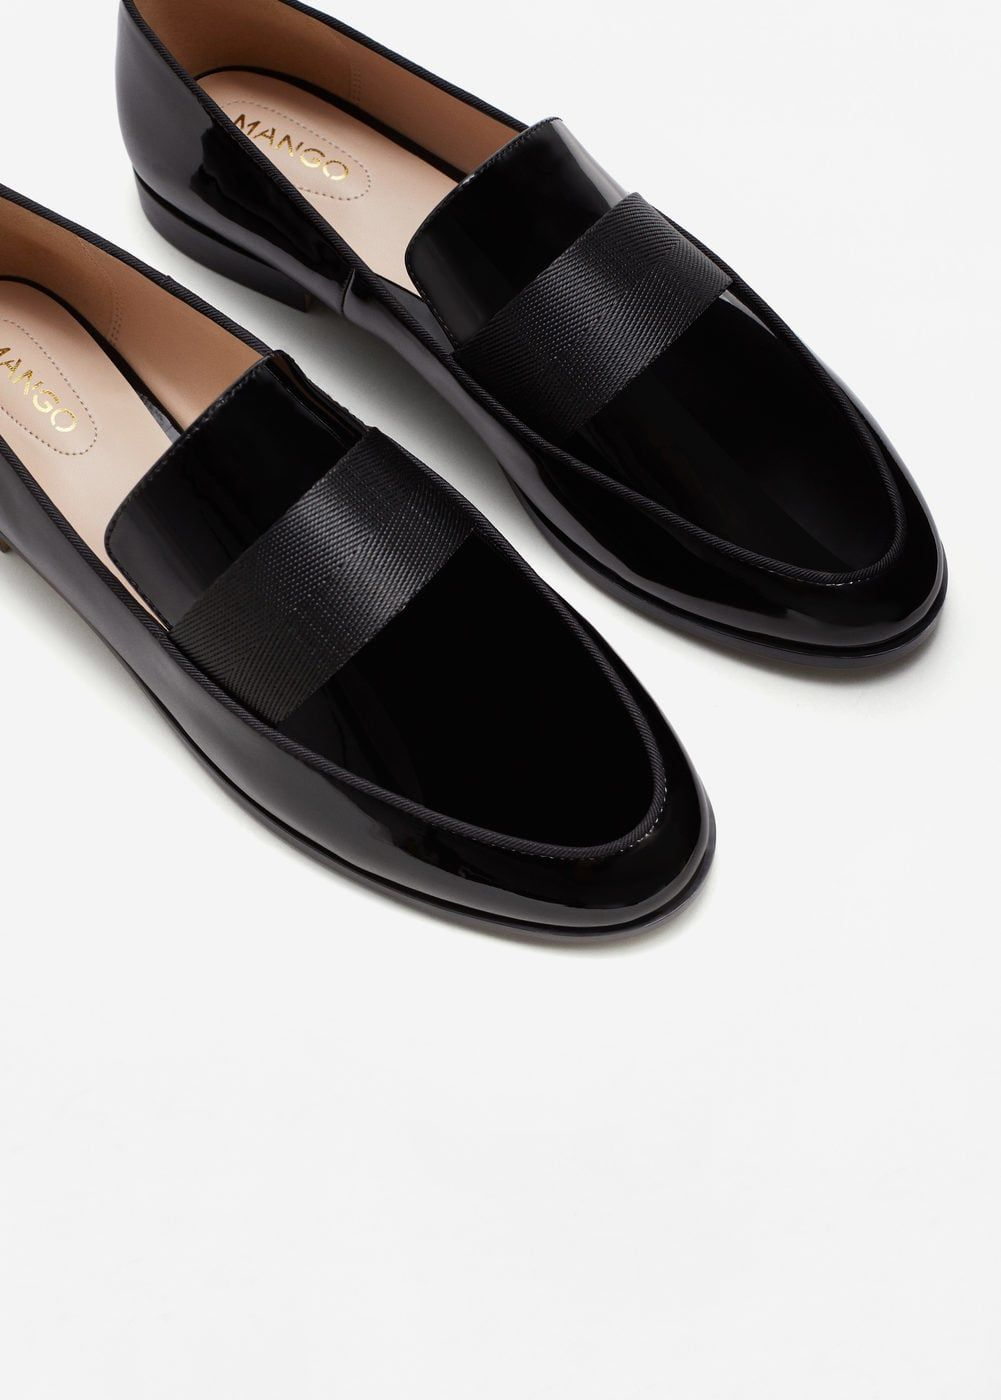 6bdfe9ba7ba Patent loafers - Woman in 2019